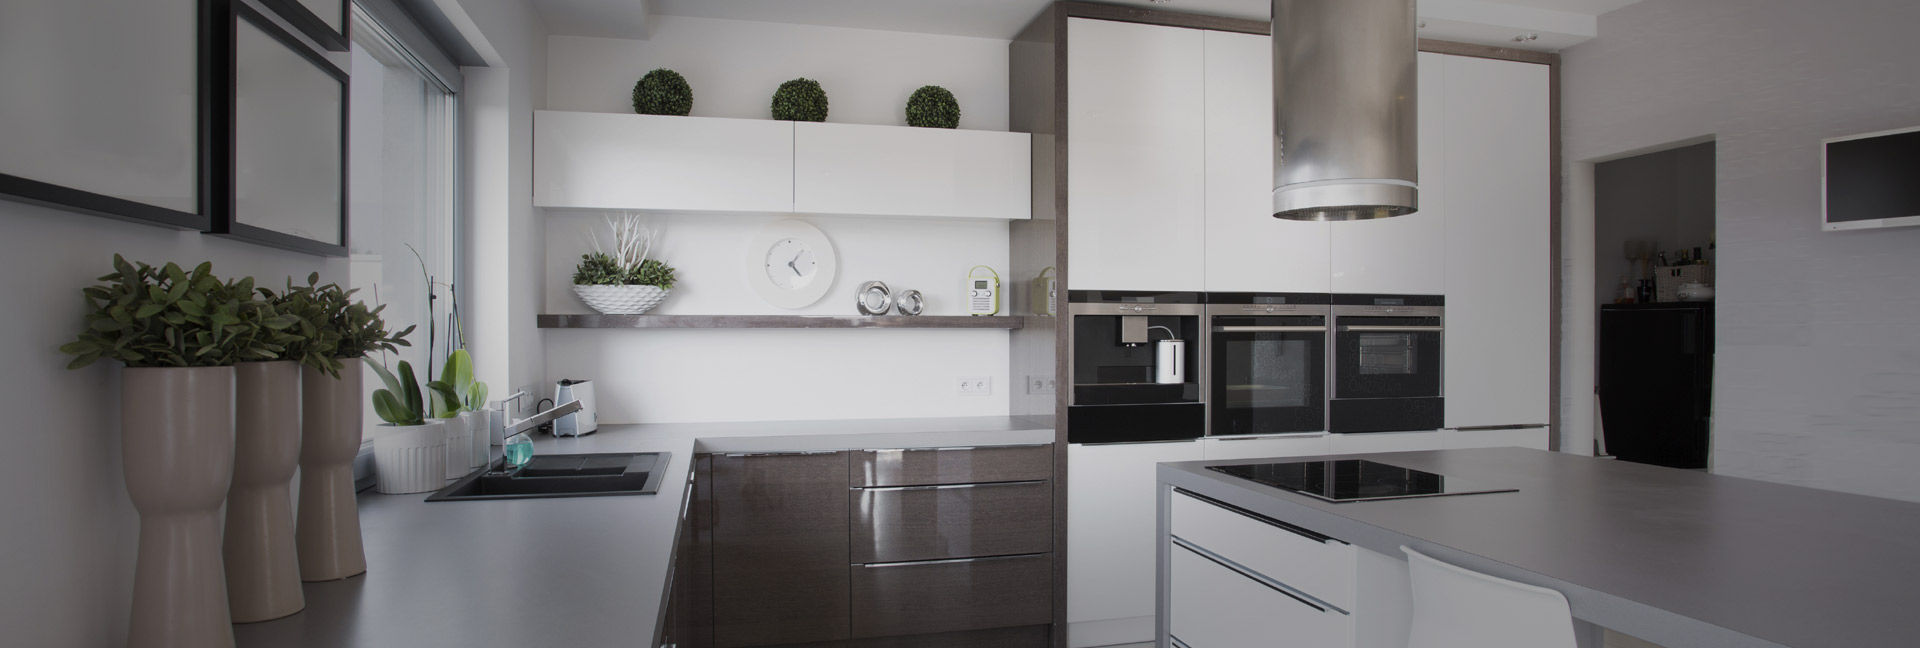 Kitchen Designs and Fitters in Bearsden and Milgavie